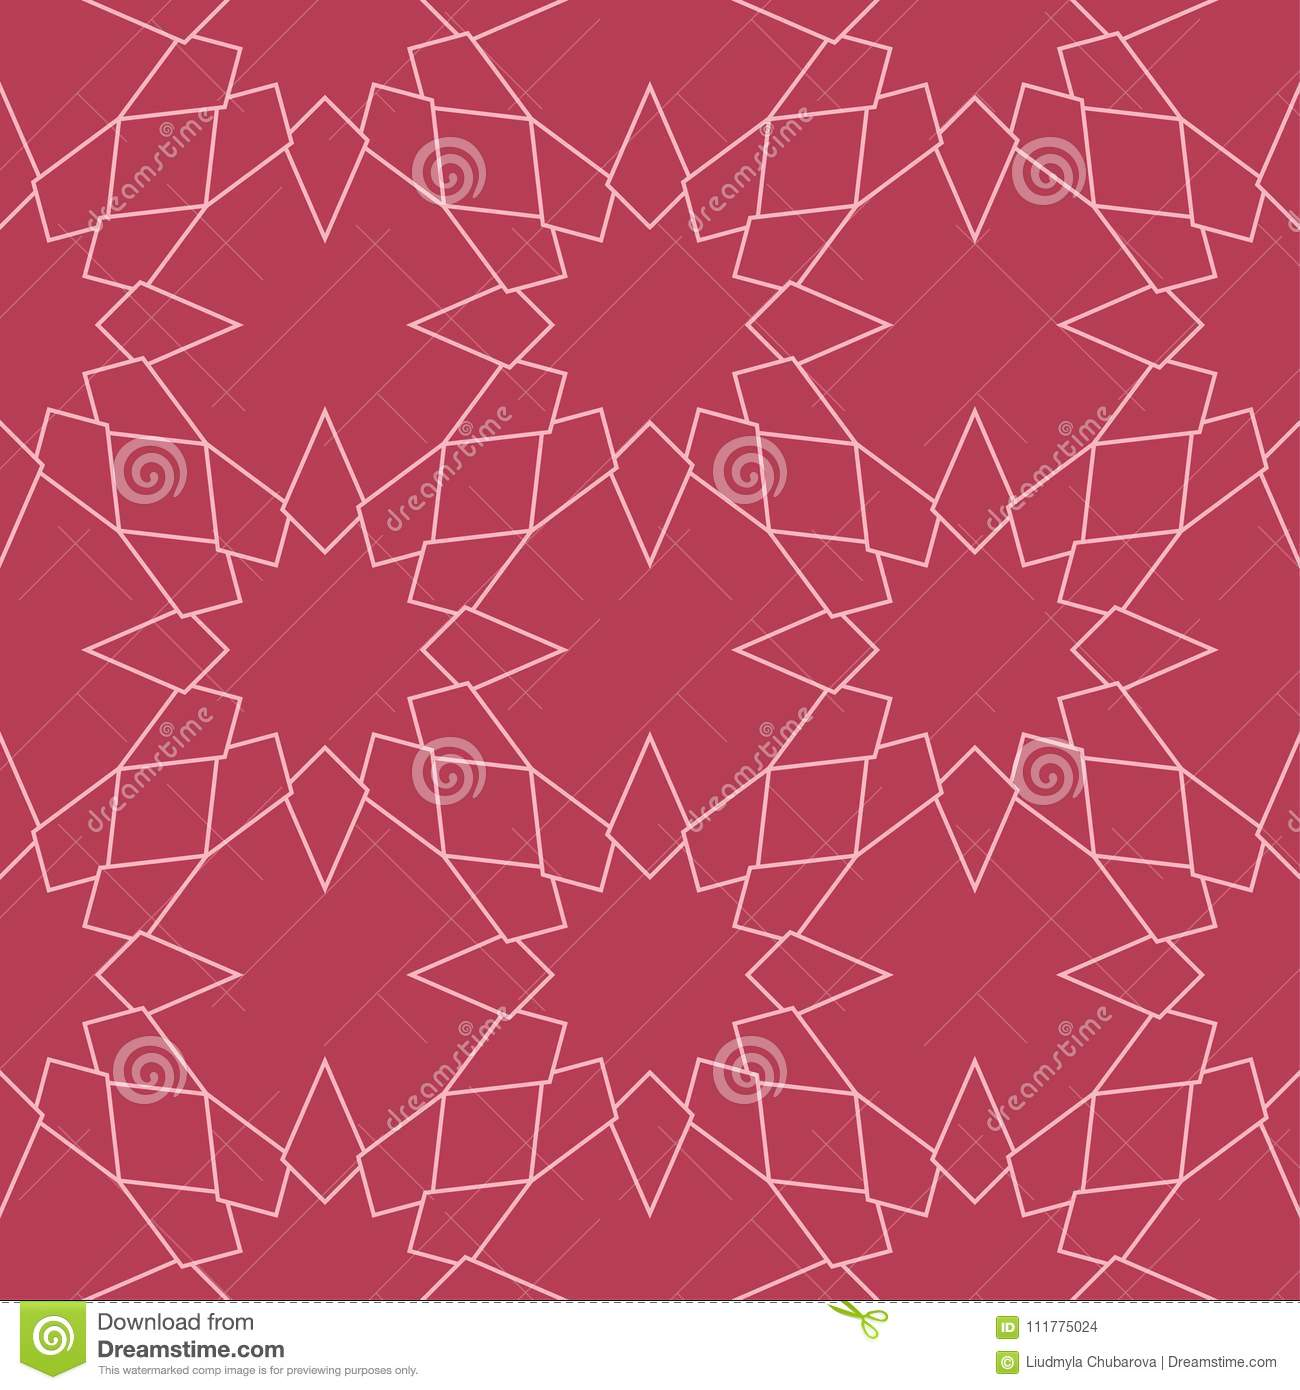 Geometric ornament. Red and pale pink seamless pattern